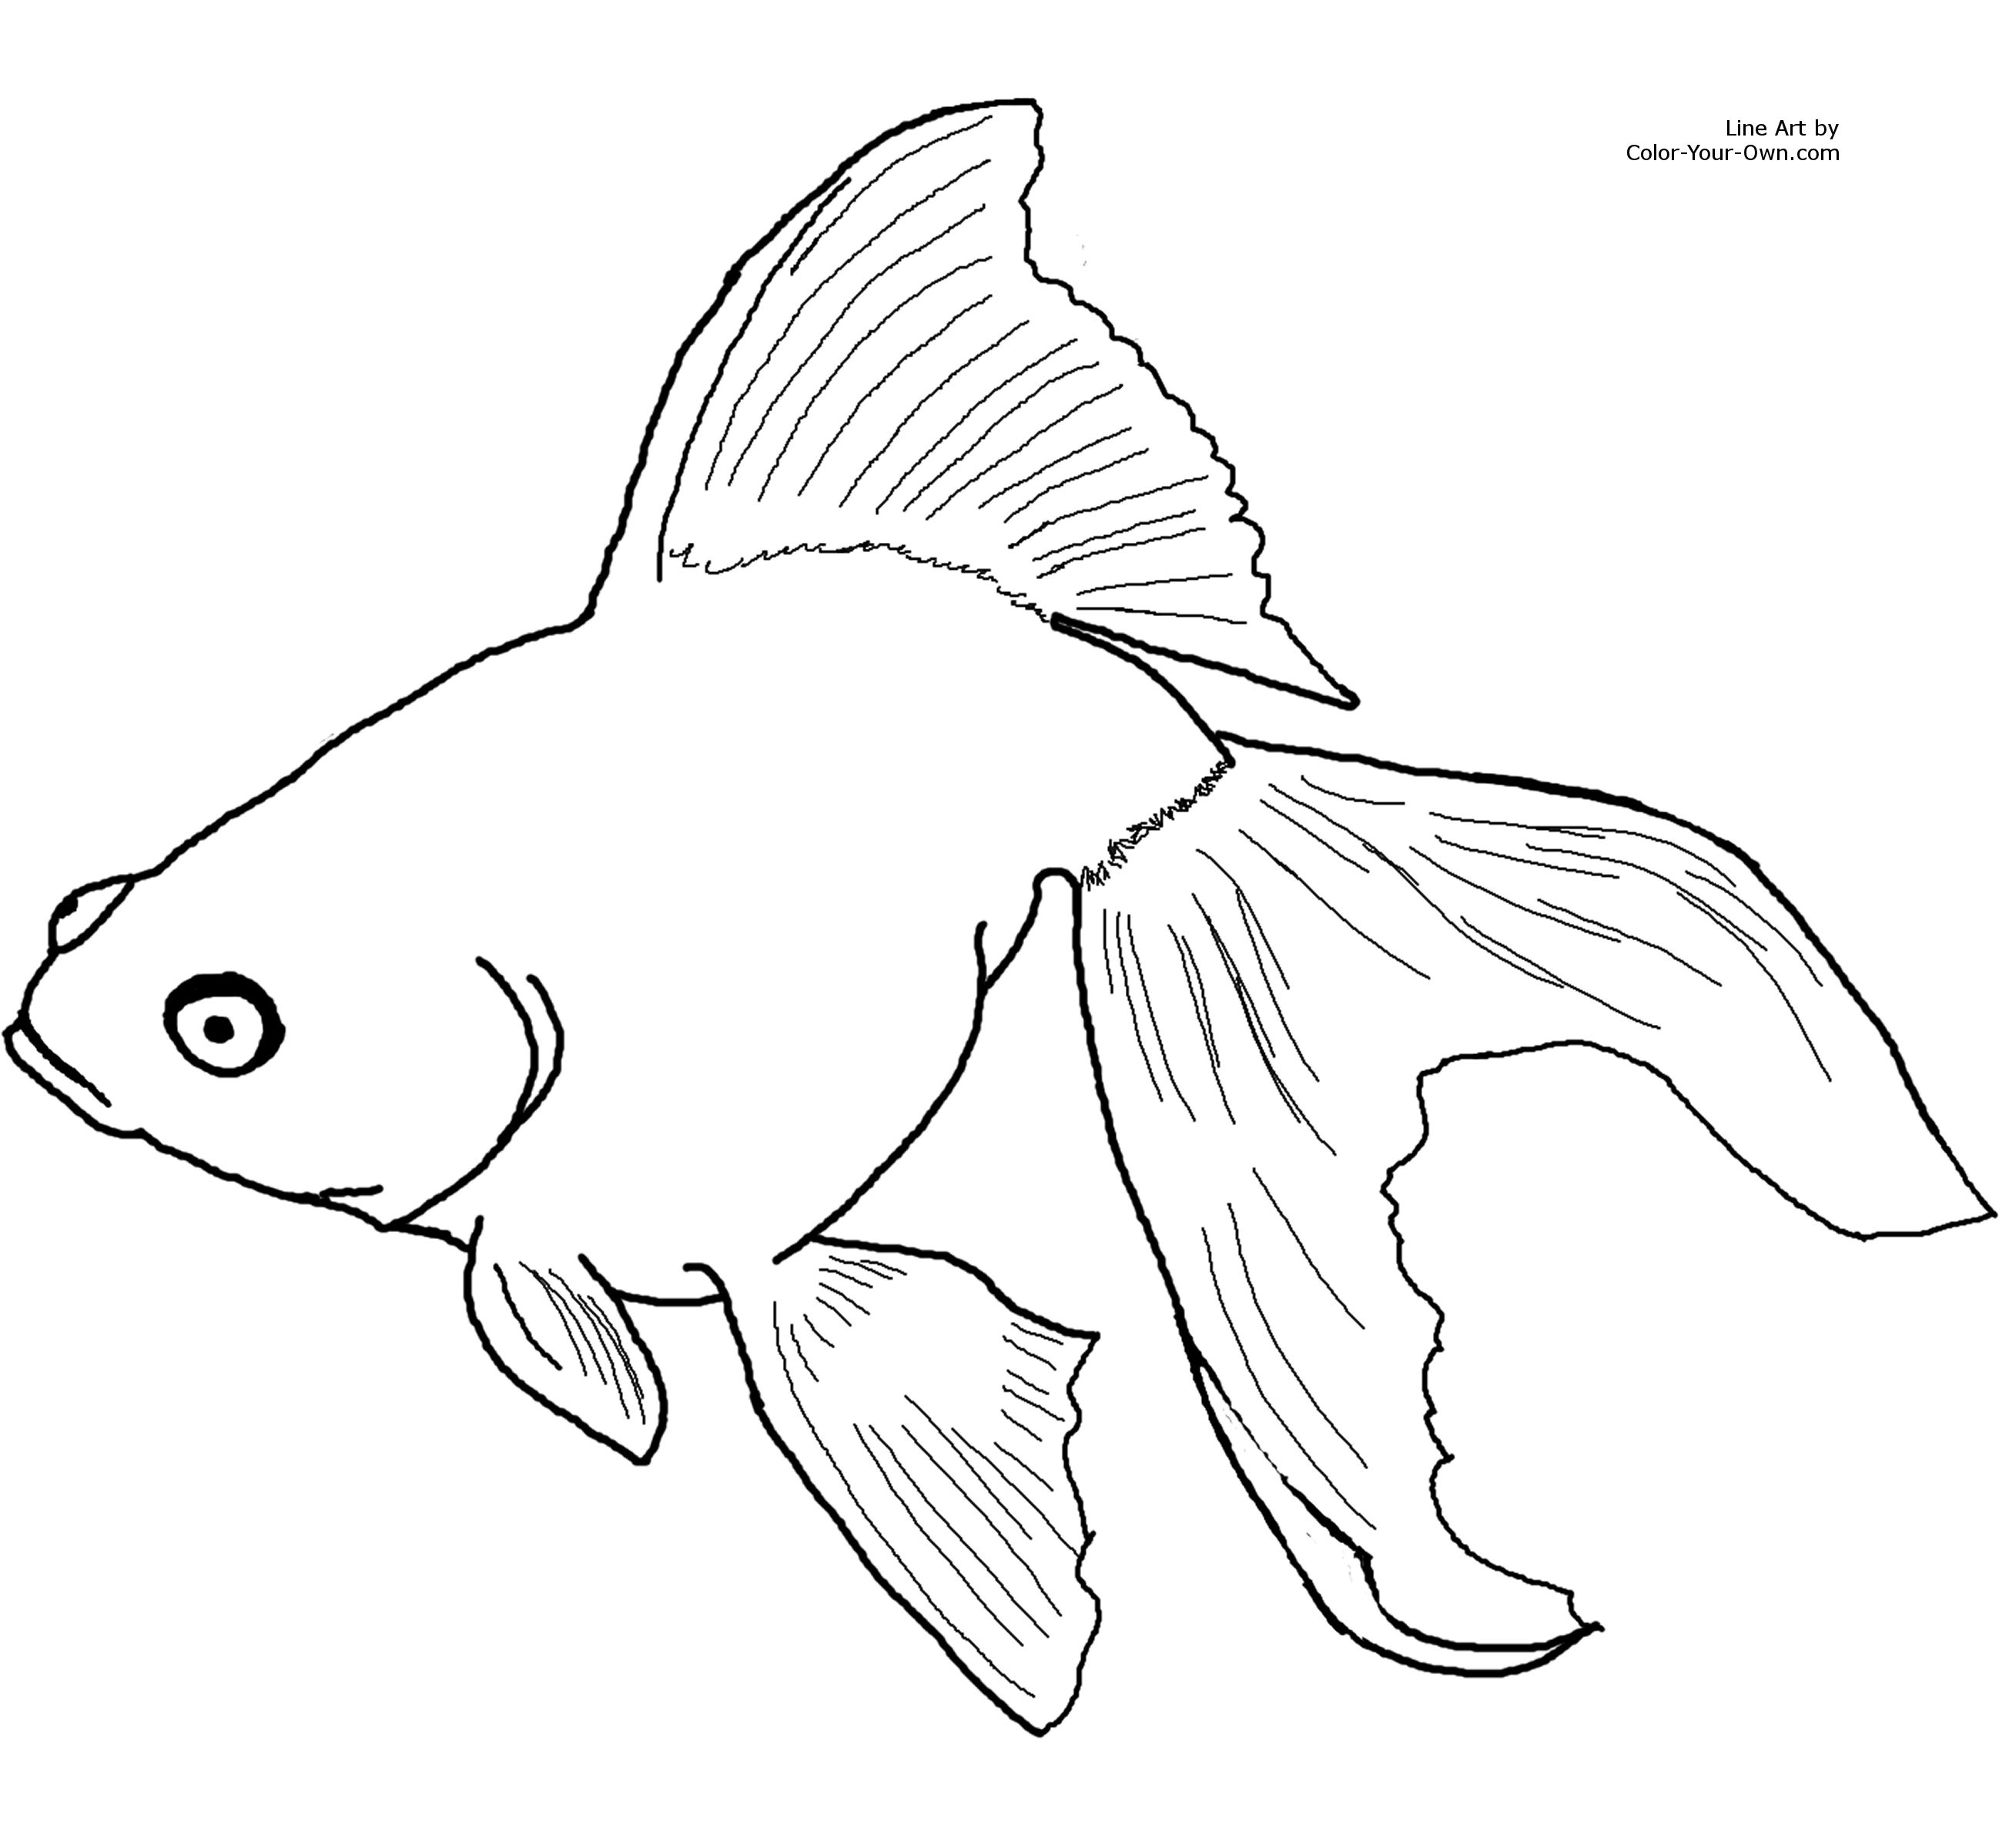 goldfish line art for the 85 x 11 printable size click here return to the coloring pages index